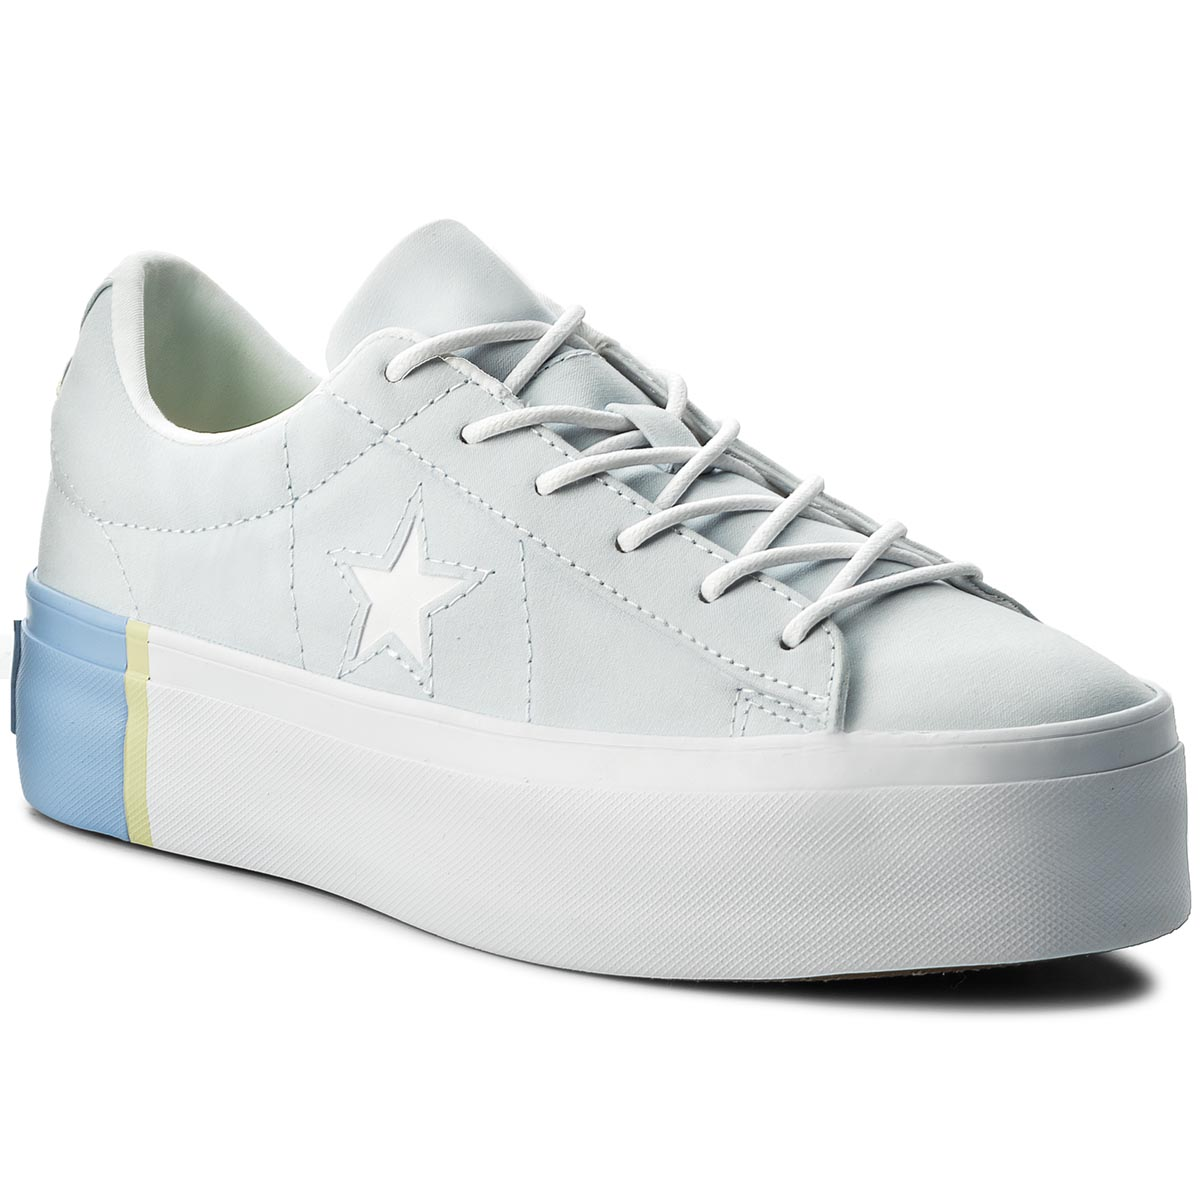 Sneakersy CONVERSE - One Star Platform Ox 559903C Blue Tint/Blue Chill/White